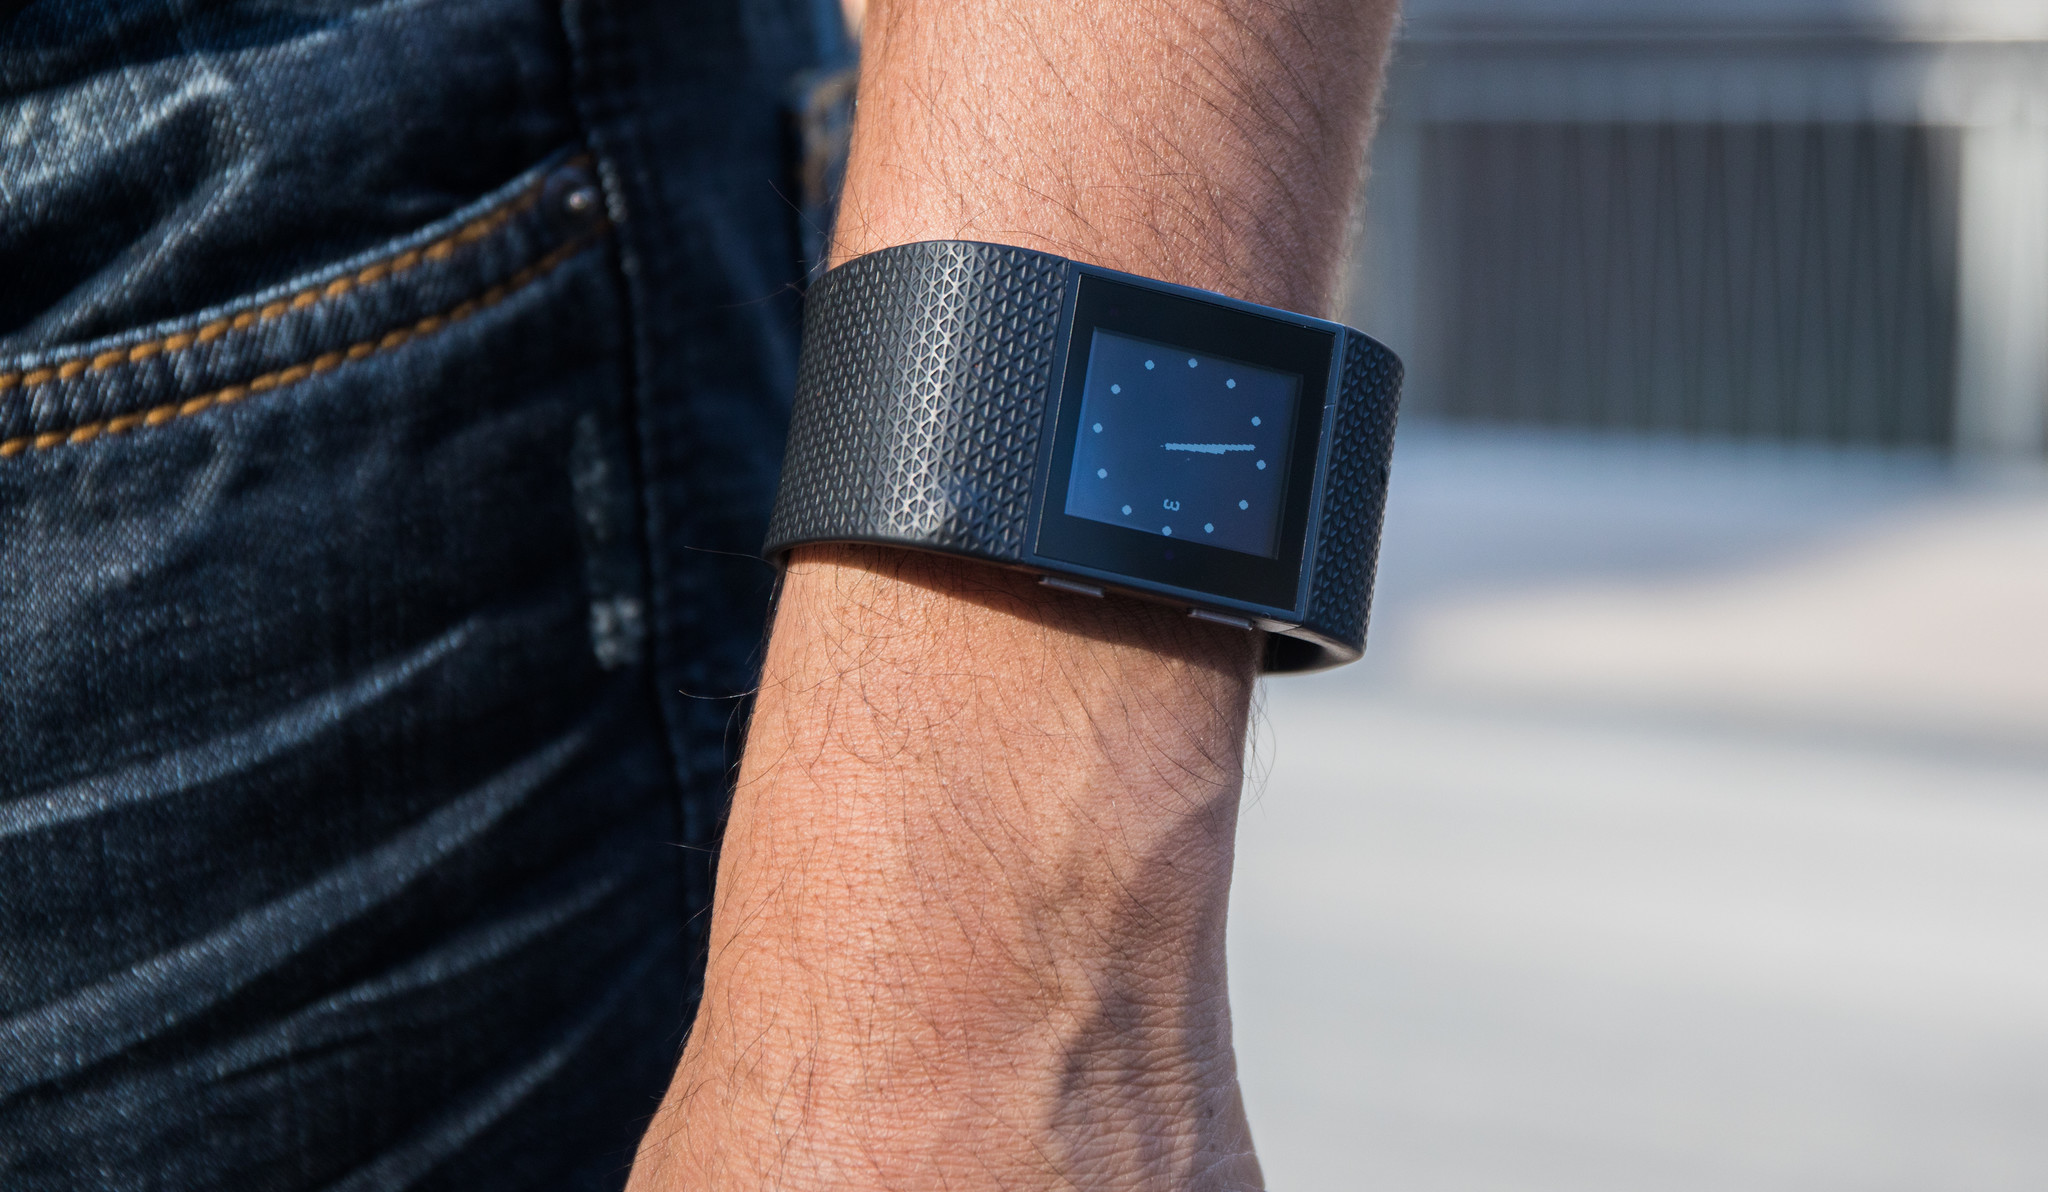 Commit a crime? Your Fitbit, key fob or pacemaker could snitch on you.